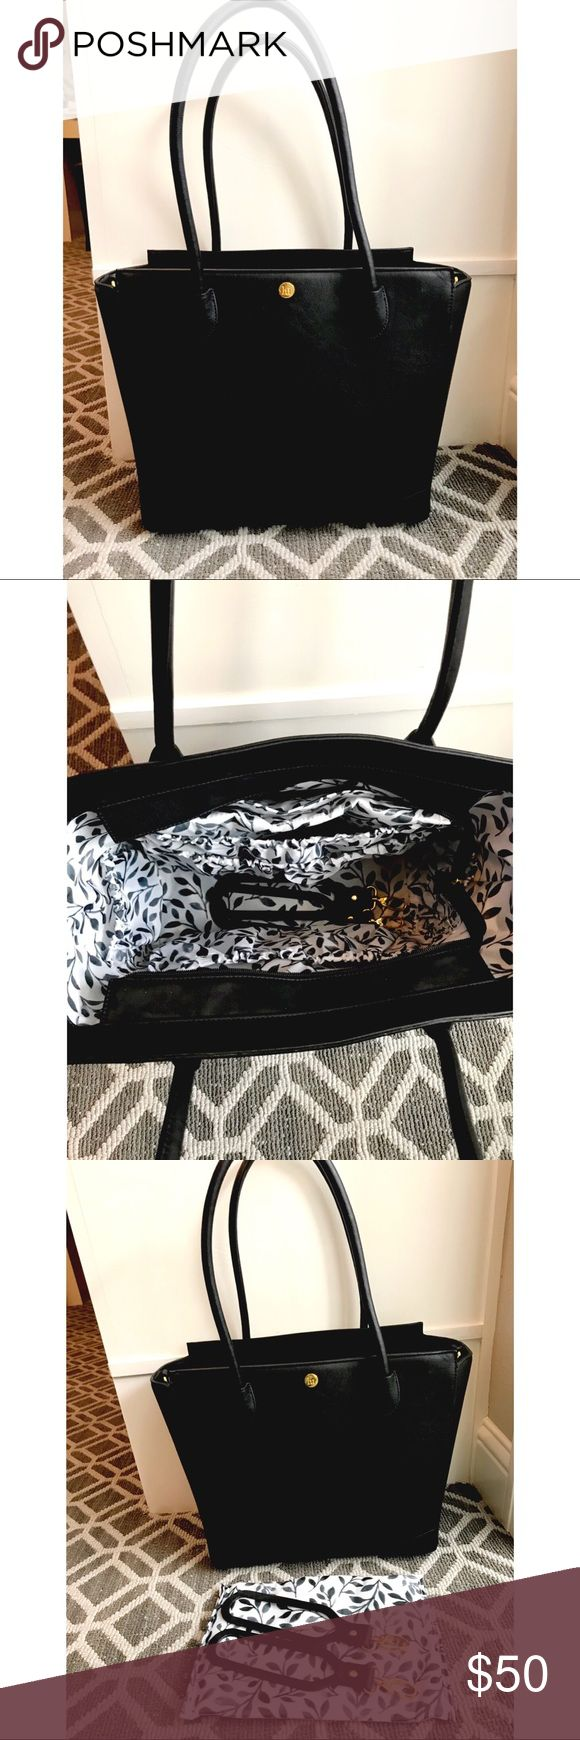 Little Unicorn Brookside Tote / Diaper Bag Little Unicorn Brookside Tote/Diaper Bag, retails for $75. Comes with stroller straps and changing pad. Never used! Open to offers 😊 Accessories Bags